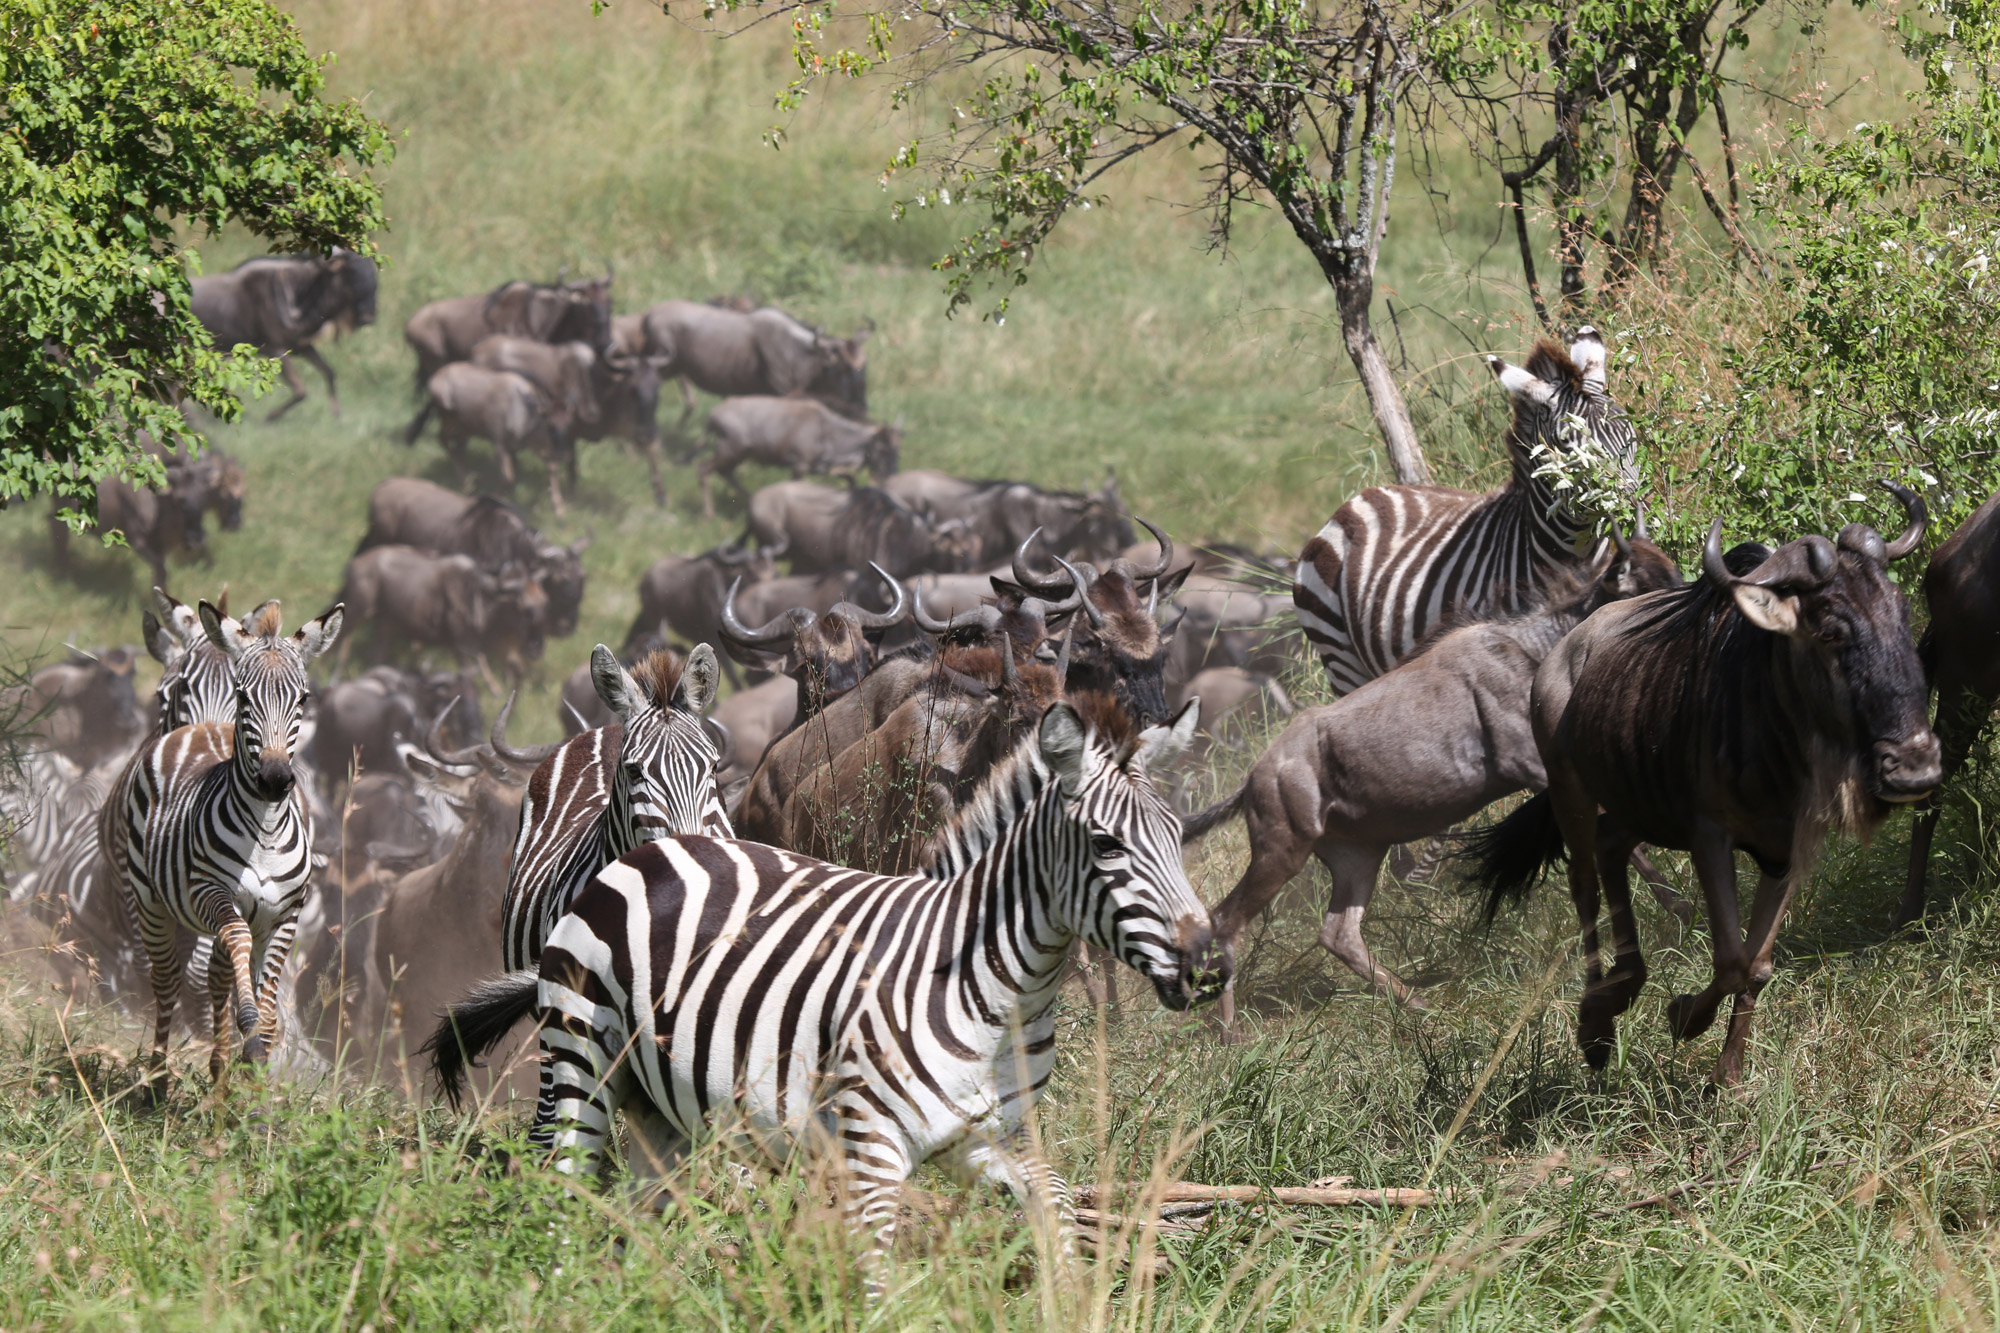 Herds of wildebeest, zebra and gazelle have now arrived in the Mara (image by Caroline Barley)